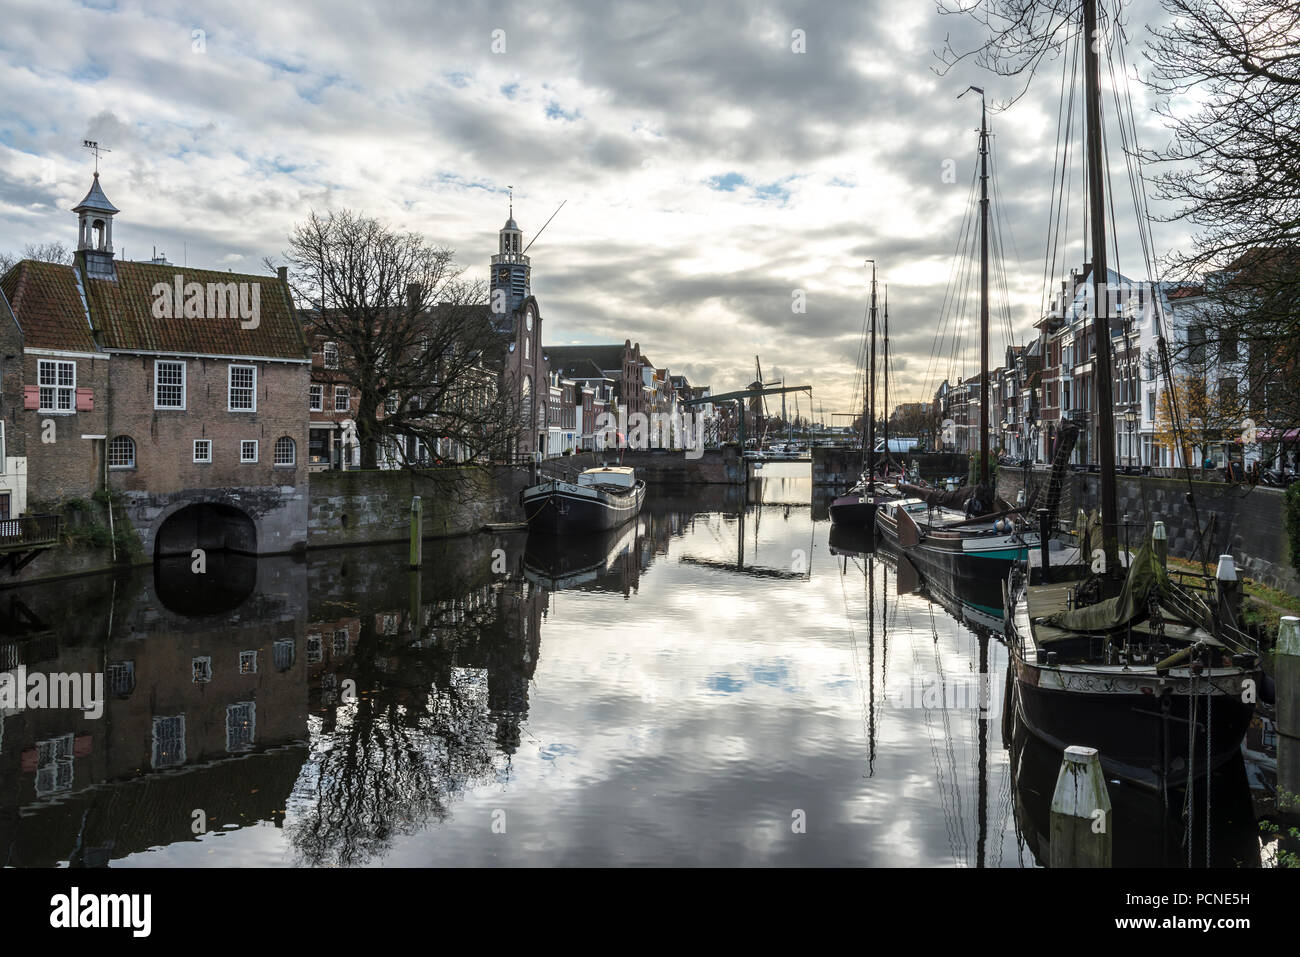 Delfhaven harbour, Netherlands. The church on the left is where the Pilgrim Fathers left from to go to America Stock Photo